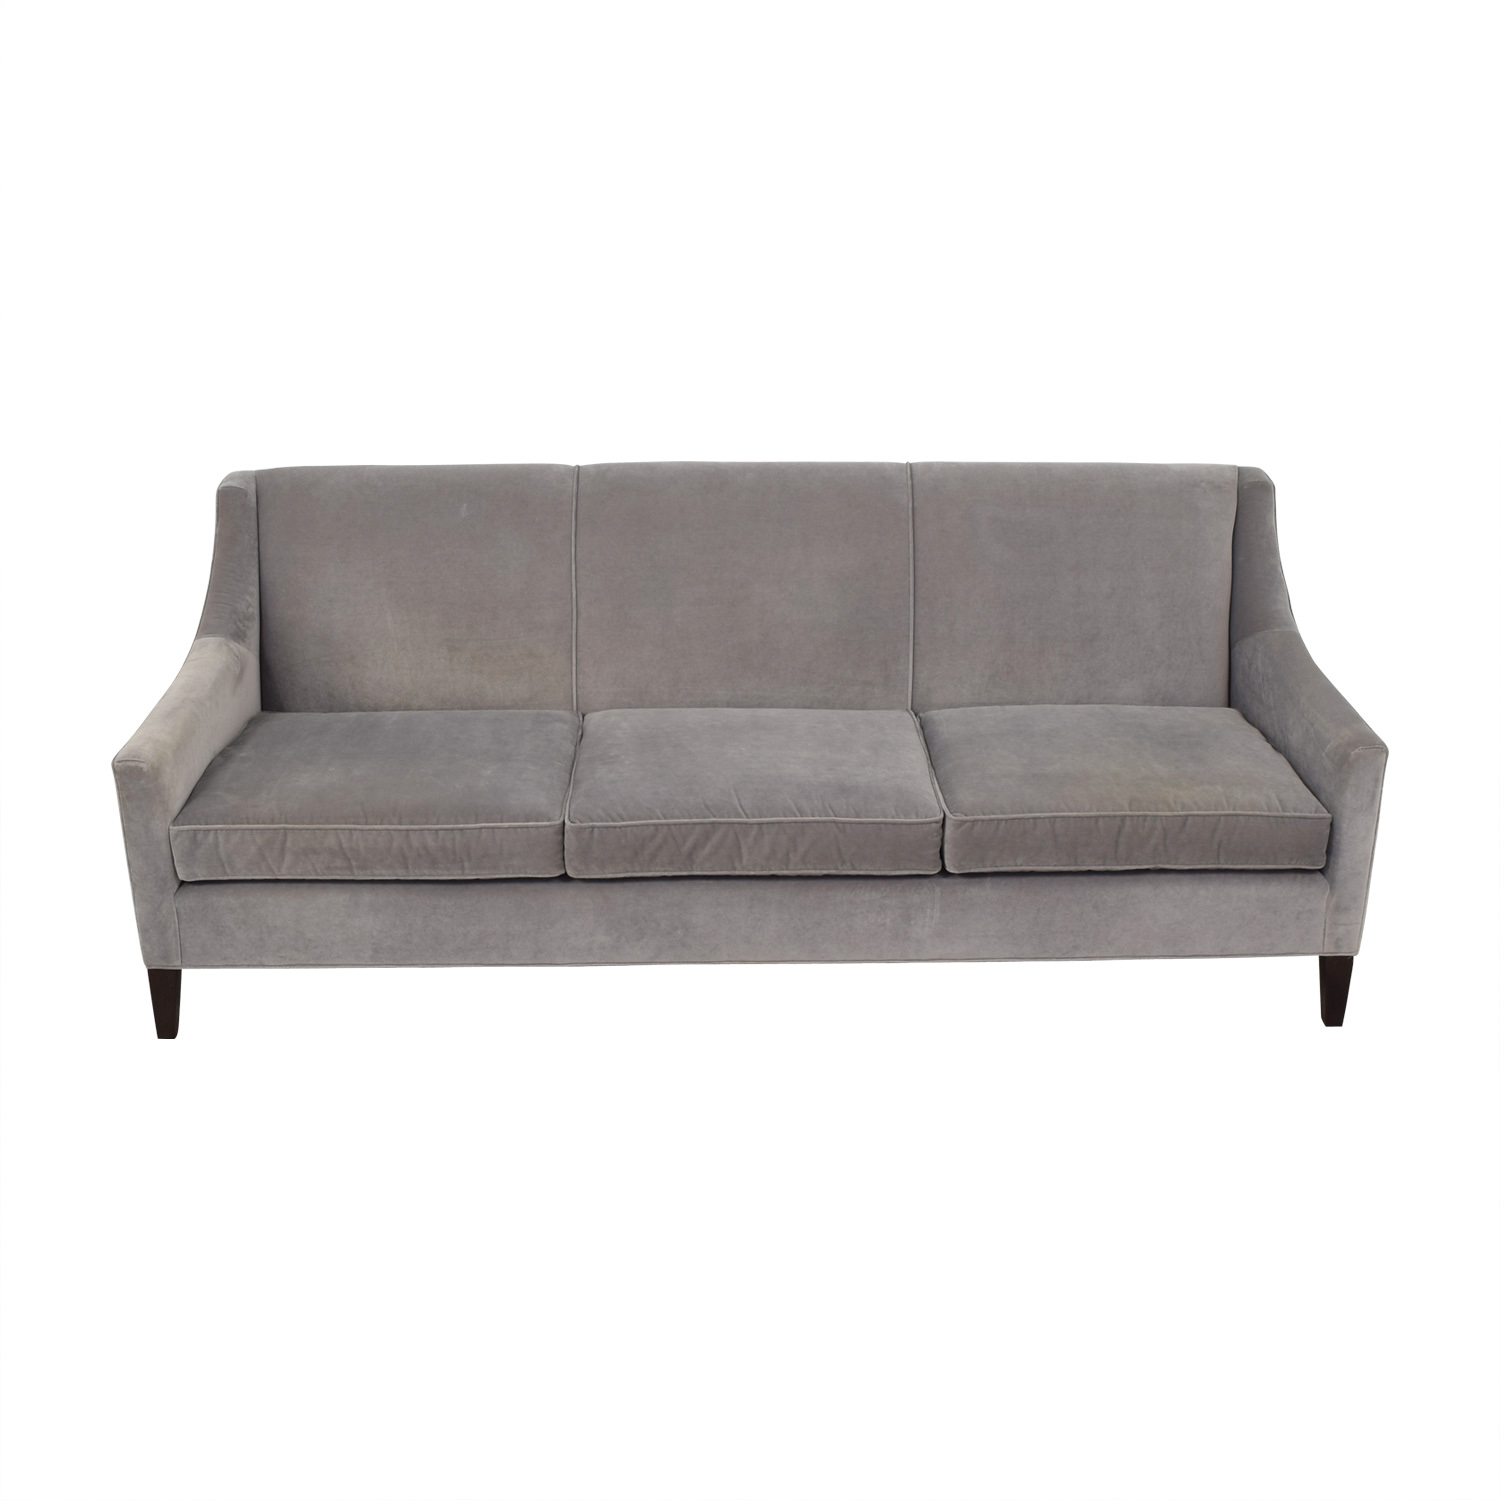 Mitchell Gold + Bob Williams Mitchell Gold + Bob Williams Gray Cara Sofa grey